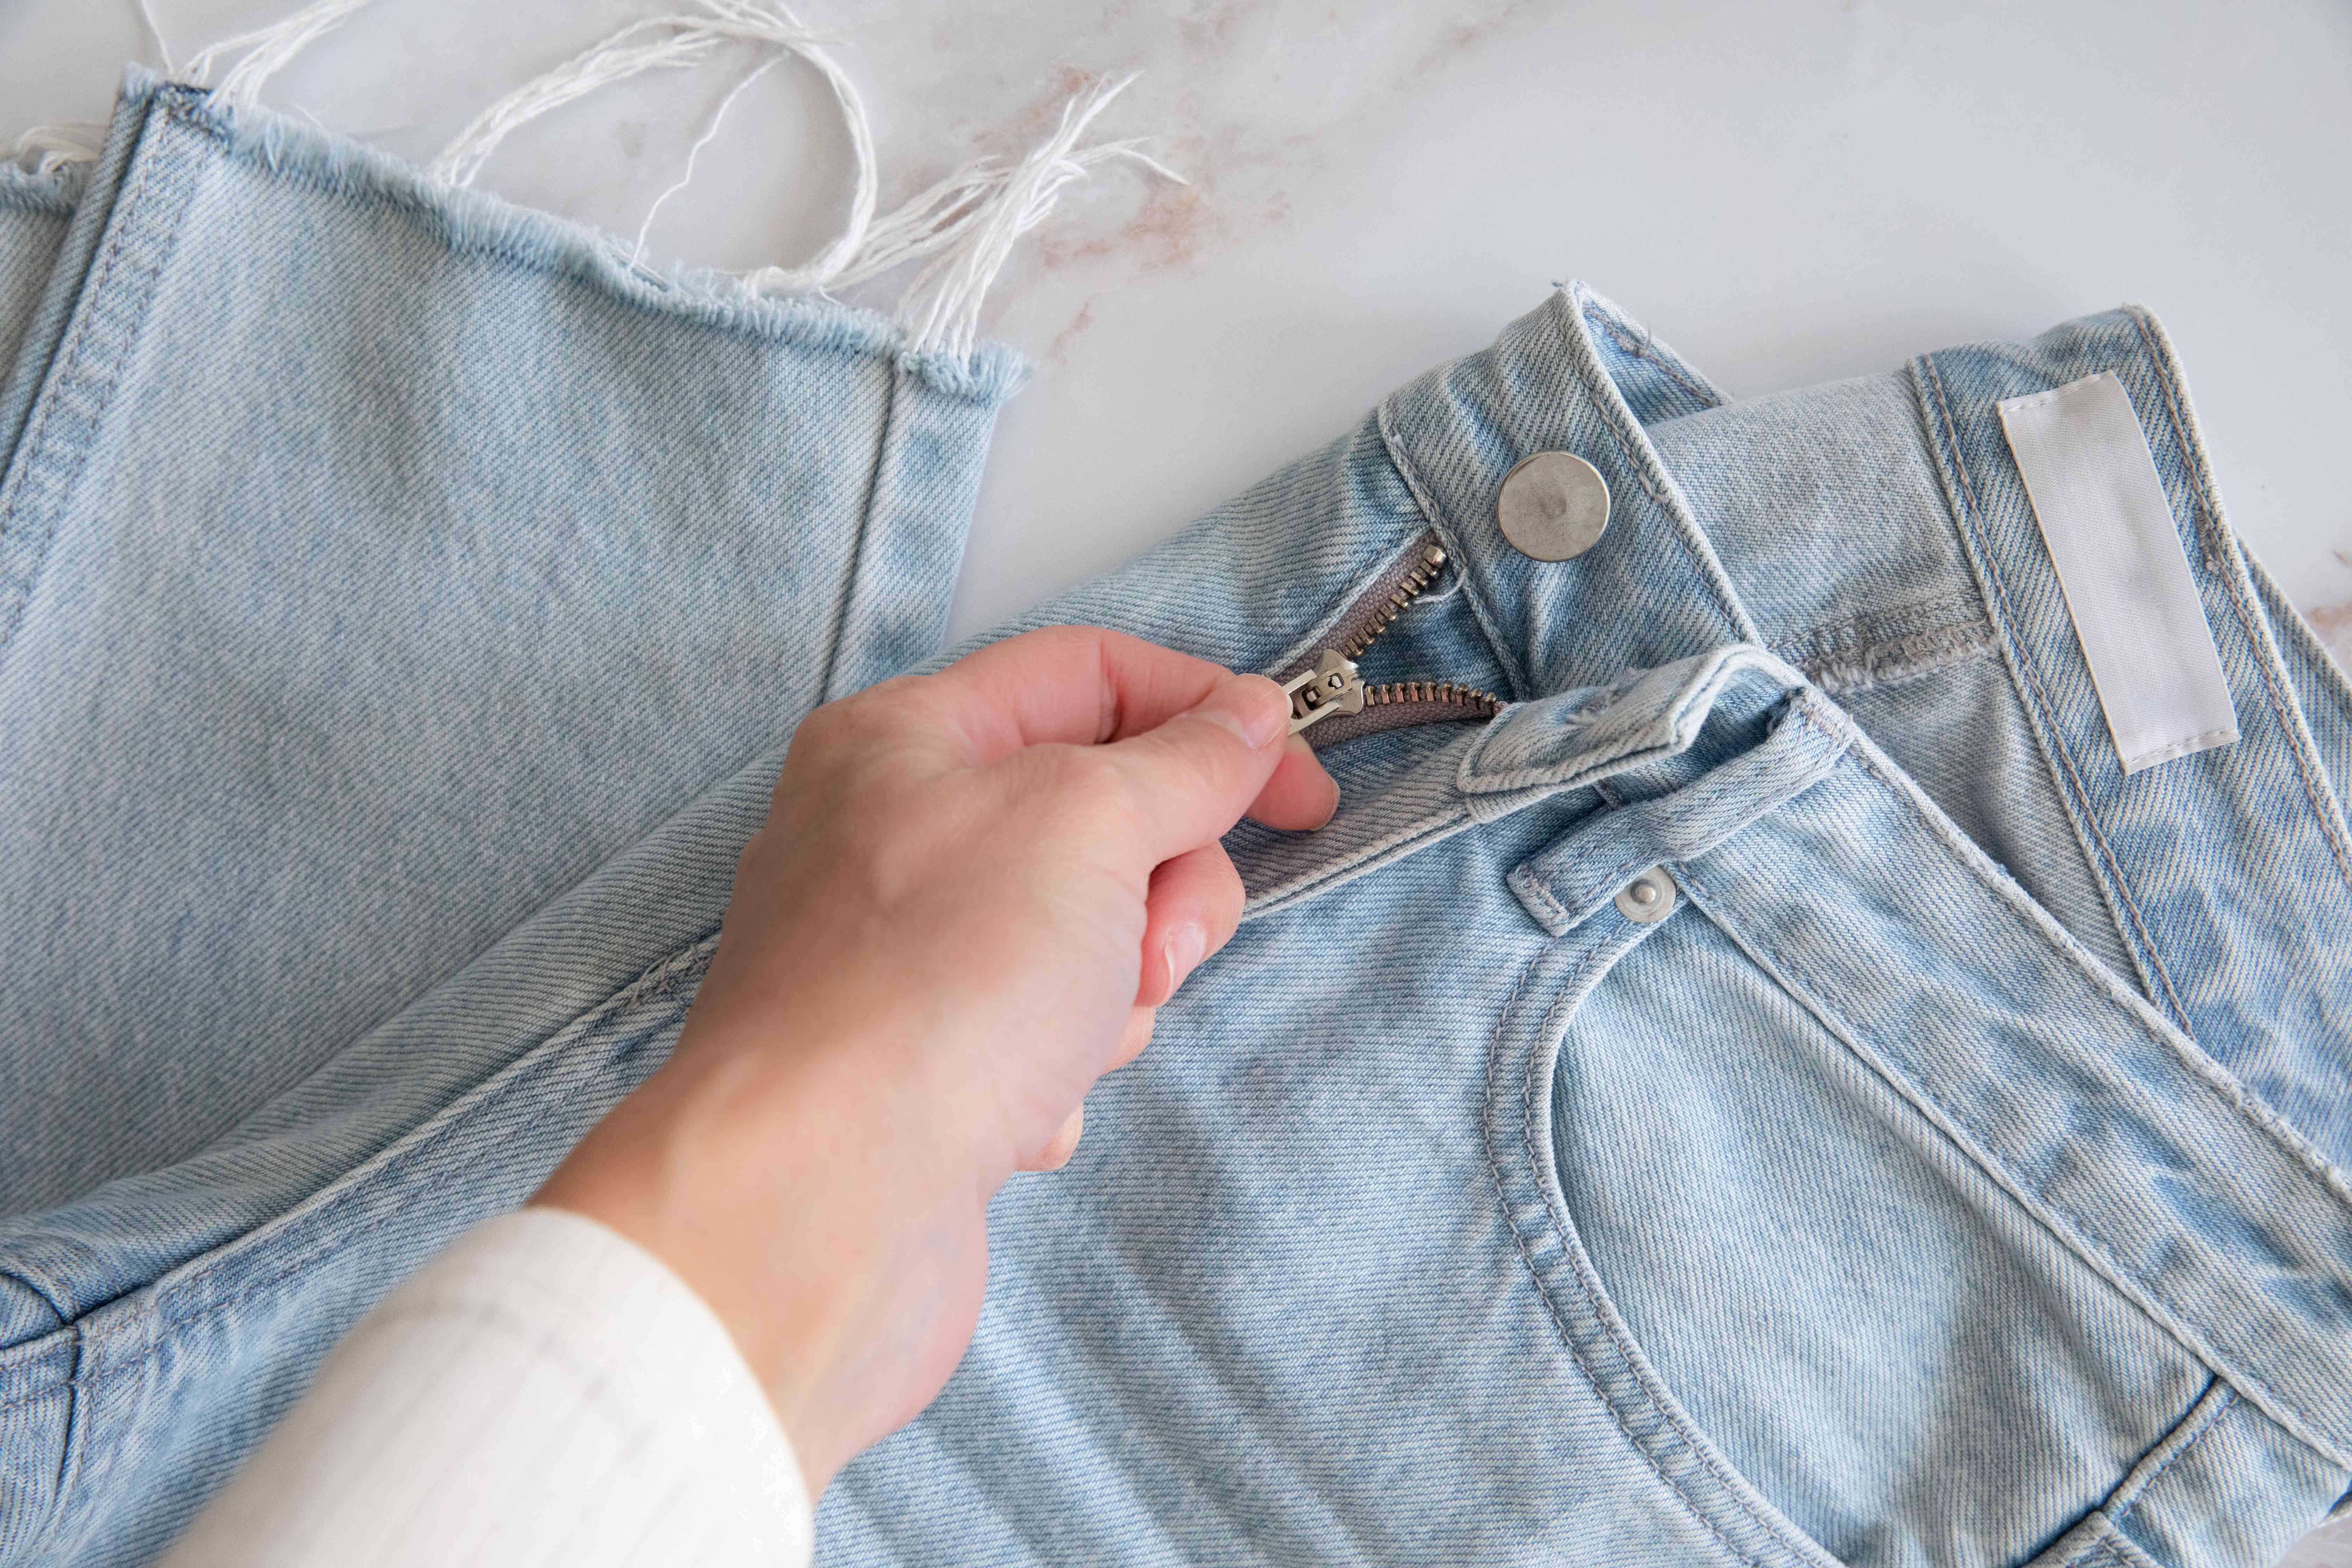 Jeans zipped up to prevent snagging clothes